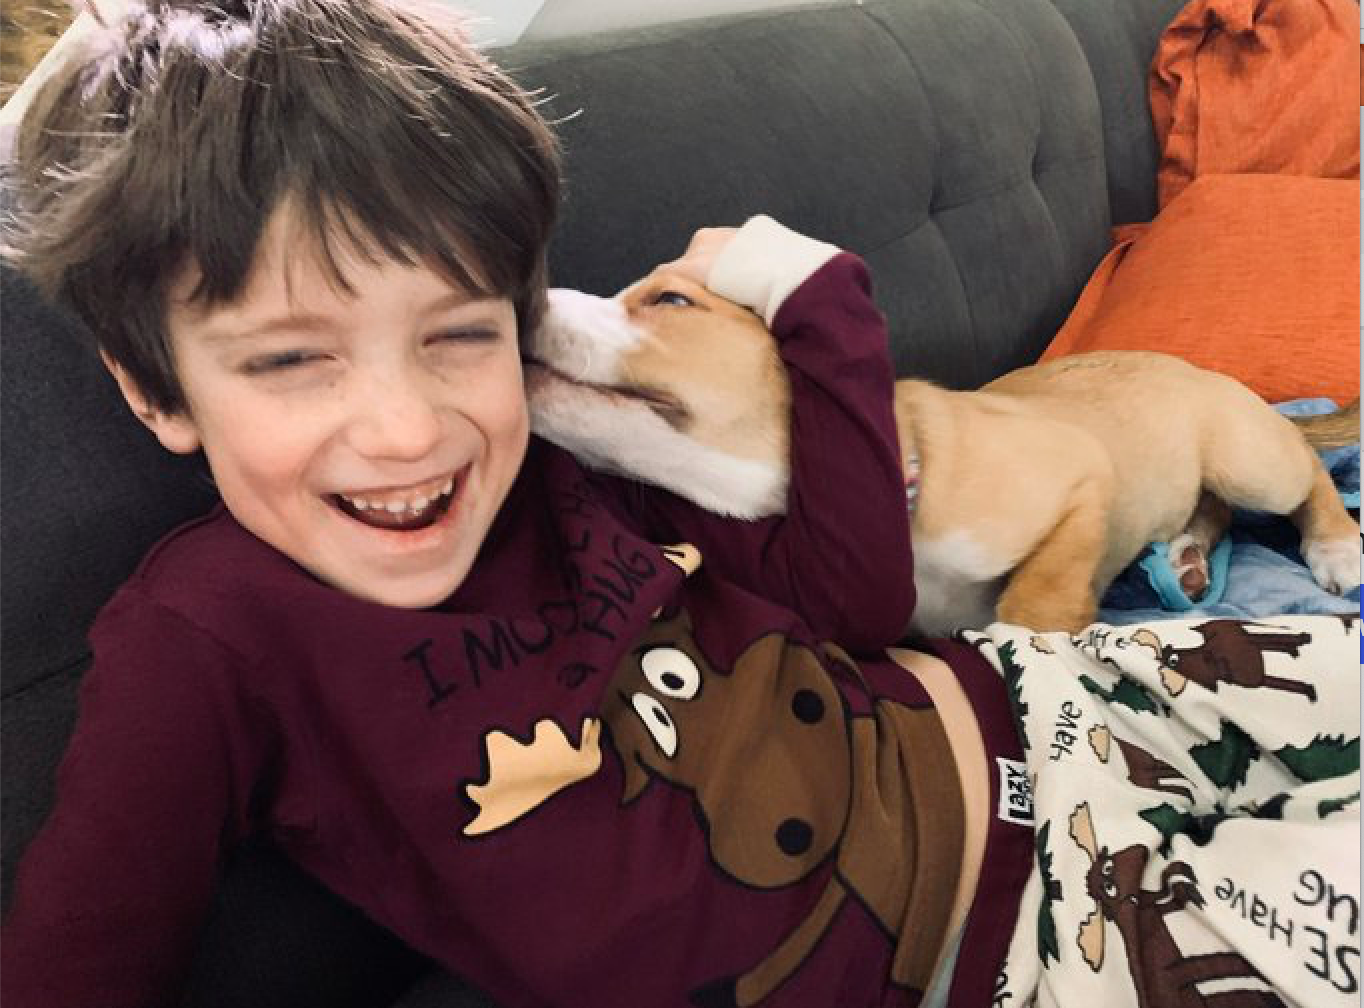 Young boy laughing with dog on couch.